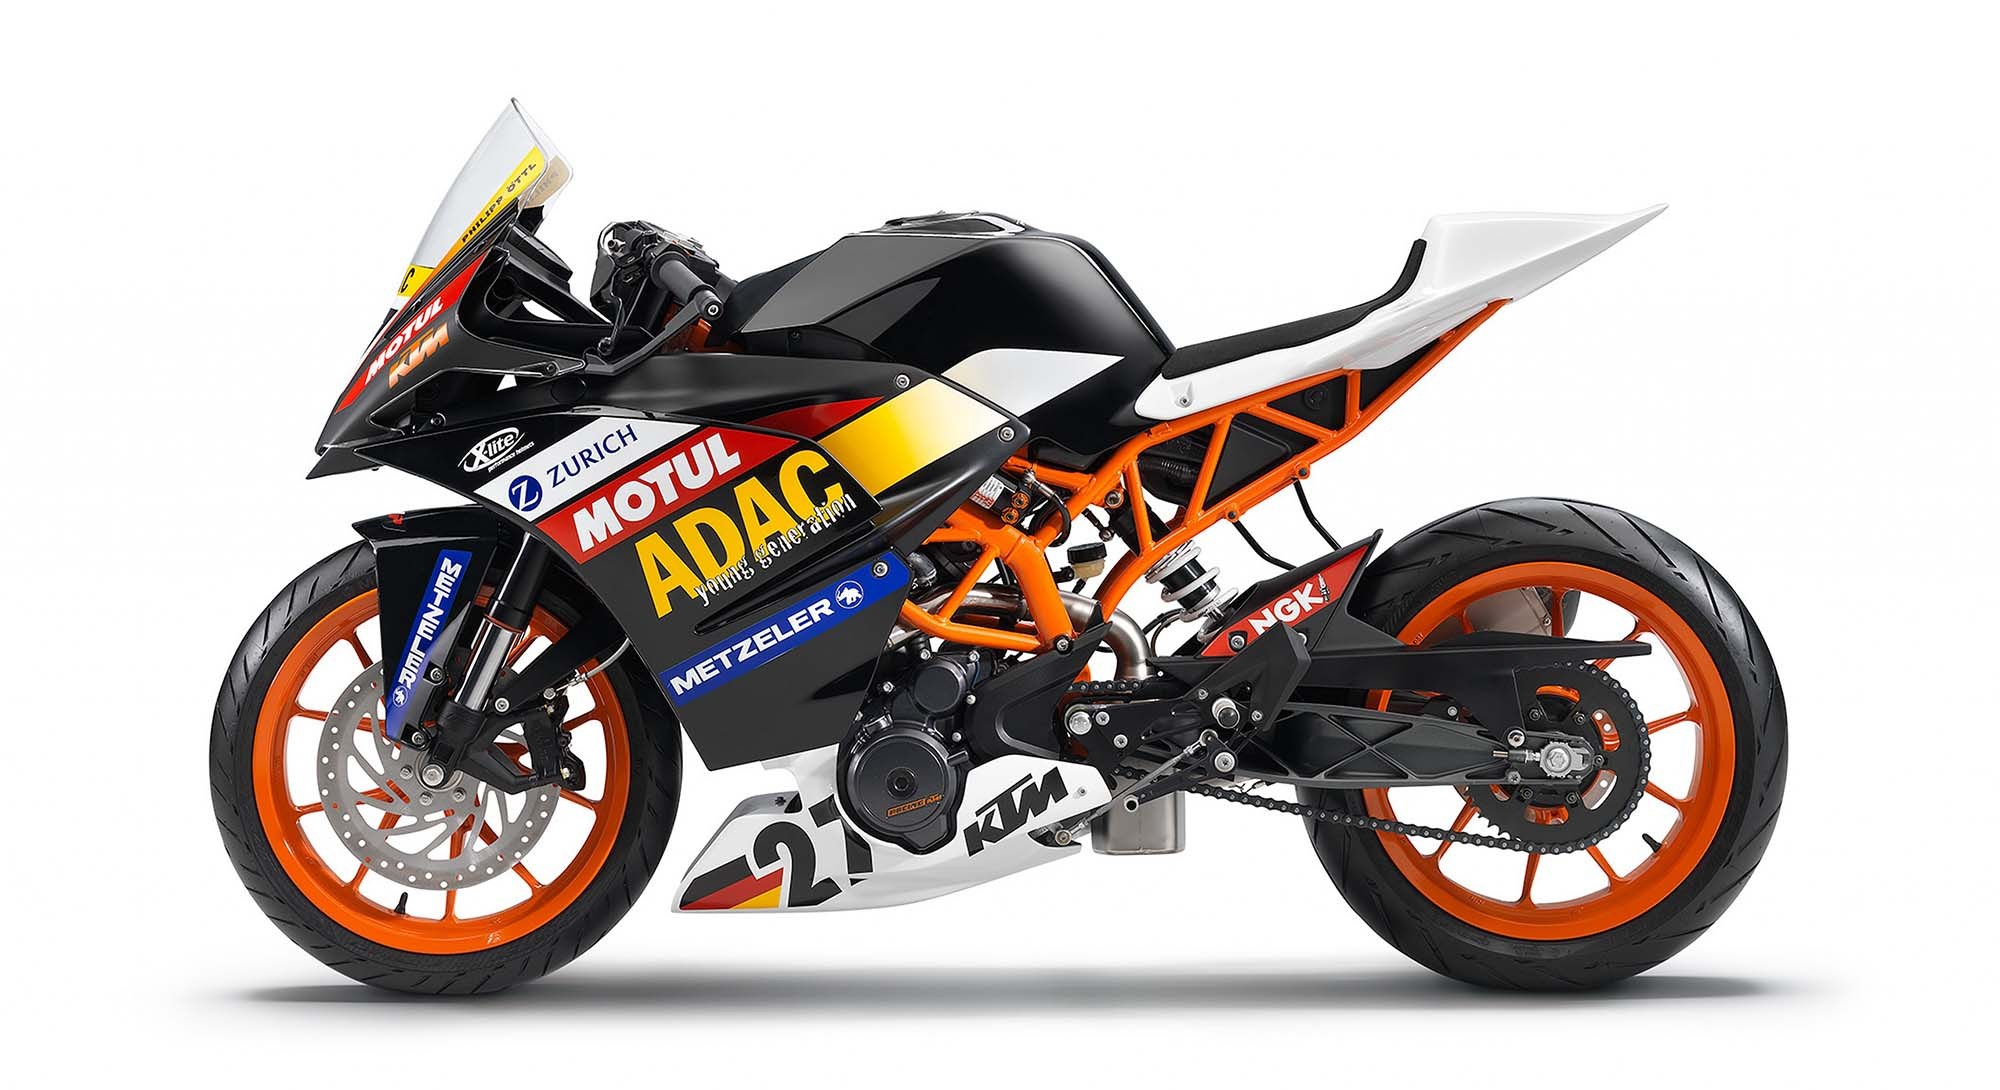 8 Ktm Rc 200 390 Mods That Will Make Your Bike Look Cooler Than The Others Shifting Gears